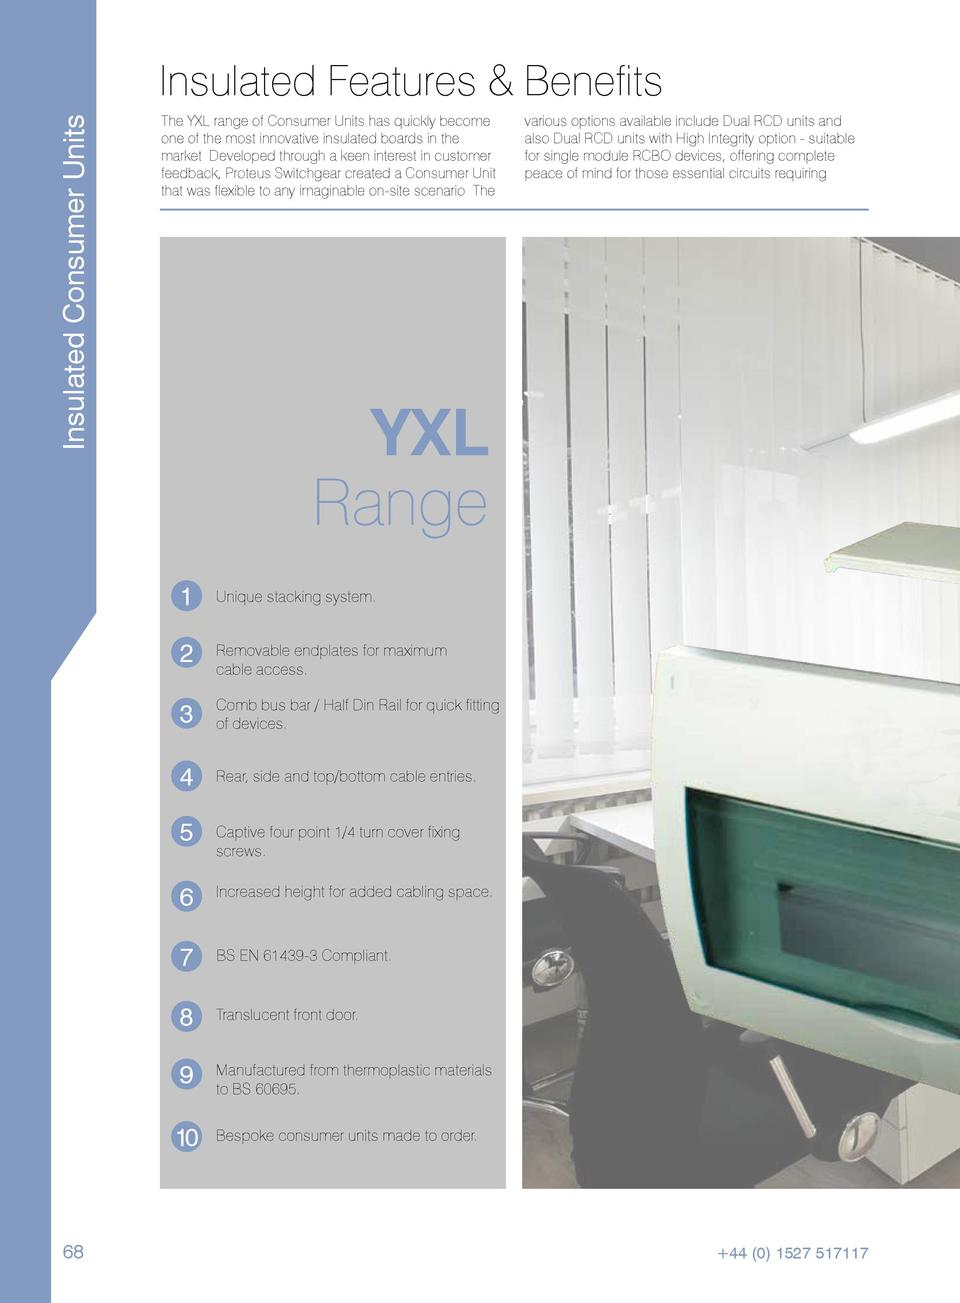 Insulated Consumer Units  Insulated Features   Benefits The YXL range of Consumer Units has quickly become one of the most...